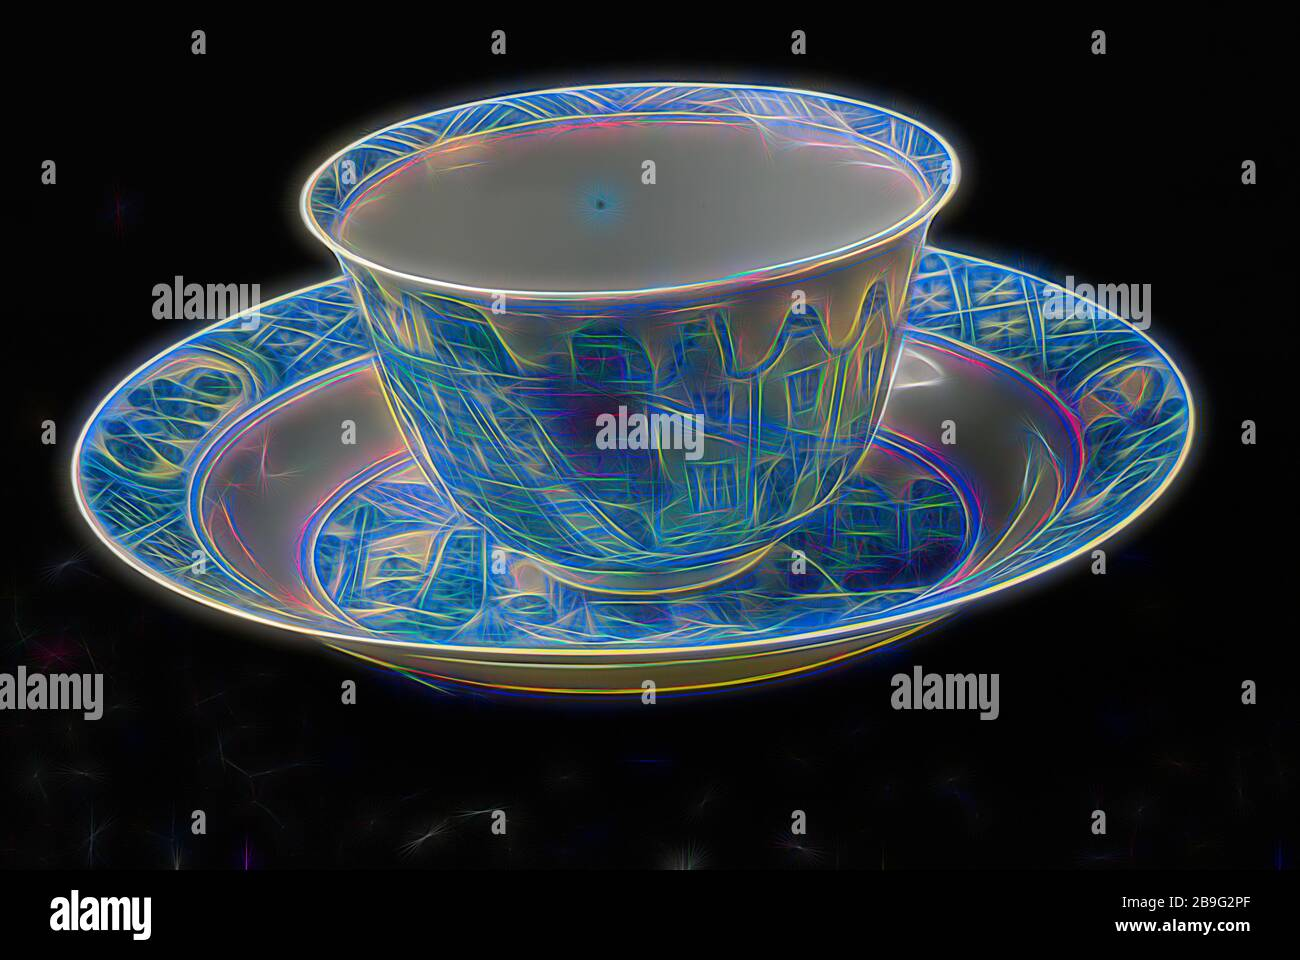 Cup And Saucer Costerman Uproar Blue Chinese Porcelain Cup Saucer Drinking Utensils Tableware Holder Ceramic Porcelain Cup H 4 0 Hand Turned Painted Painted Cup And Saucer Of Thin Walled Porcelain Depicted Is The Costerman Riots Can